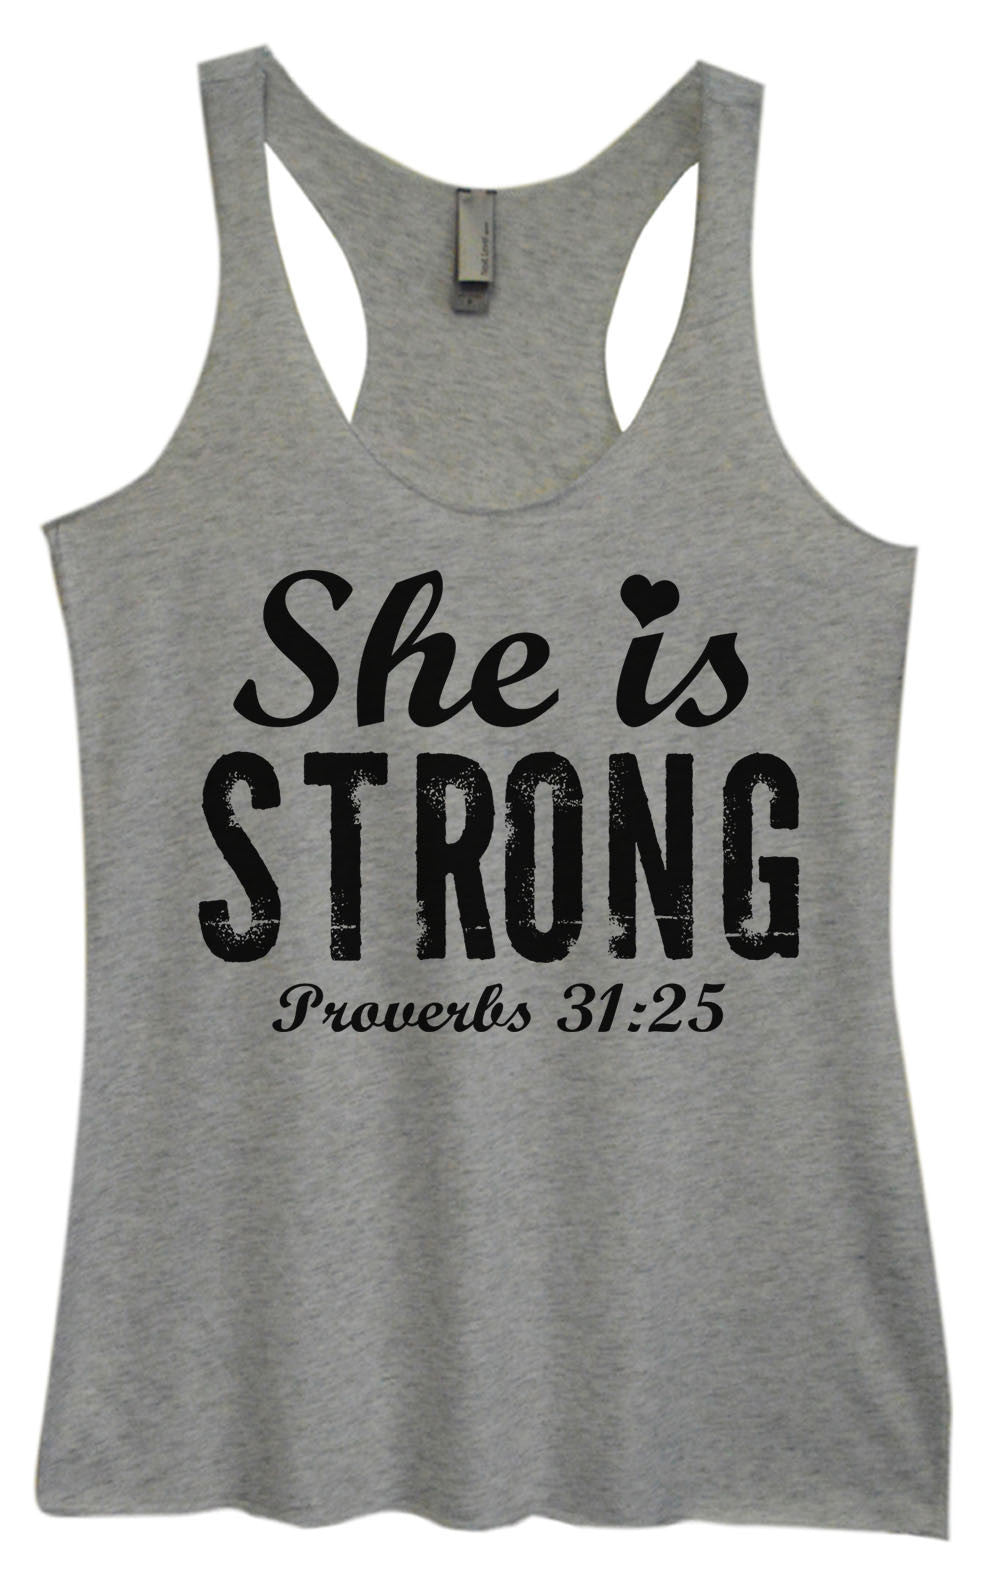 Womens Fashion Triblend Tank Top - She Is Strong Proverbs 31:25 - Tri-939 - Funny Shirts Tank Tops Burnouts and Triblends  - 1